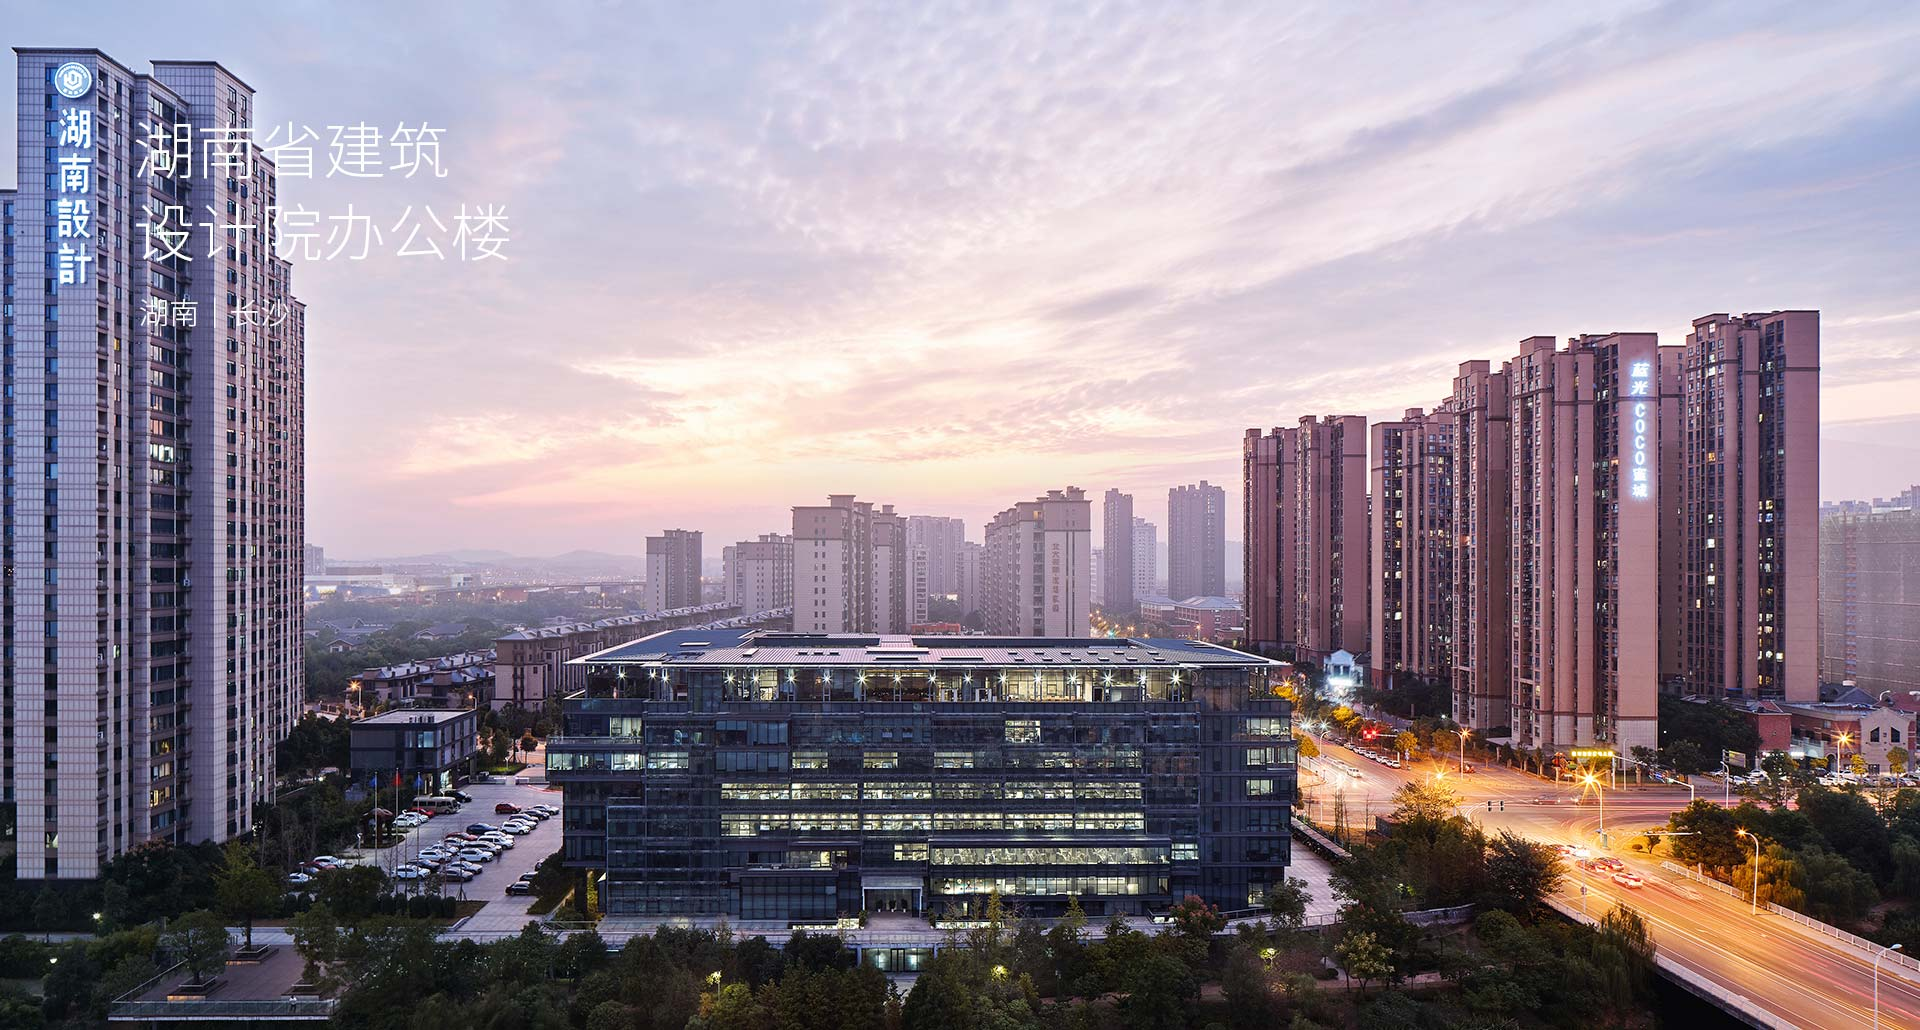 Office building of Hunan Provincial Architectural Design Institute